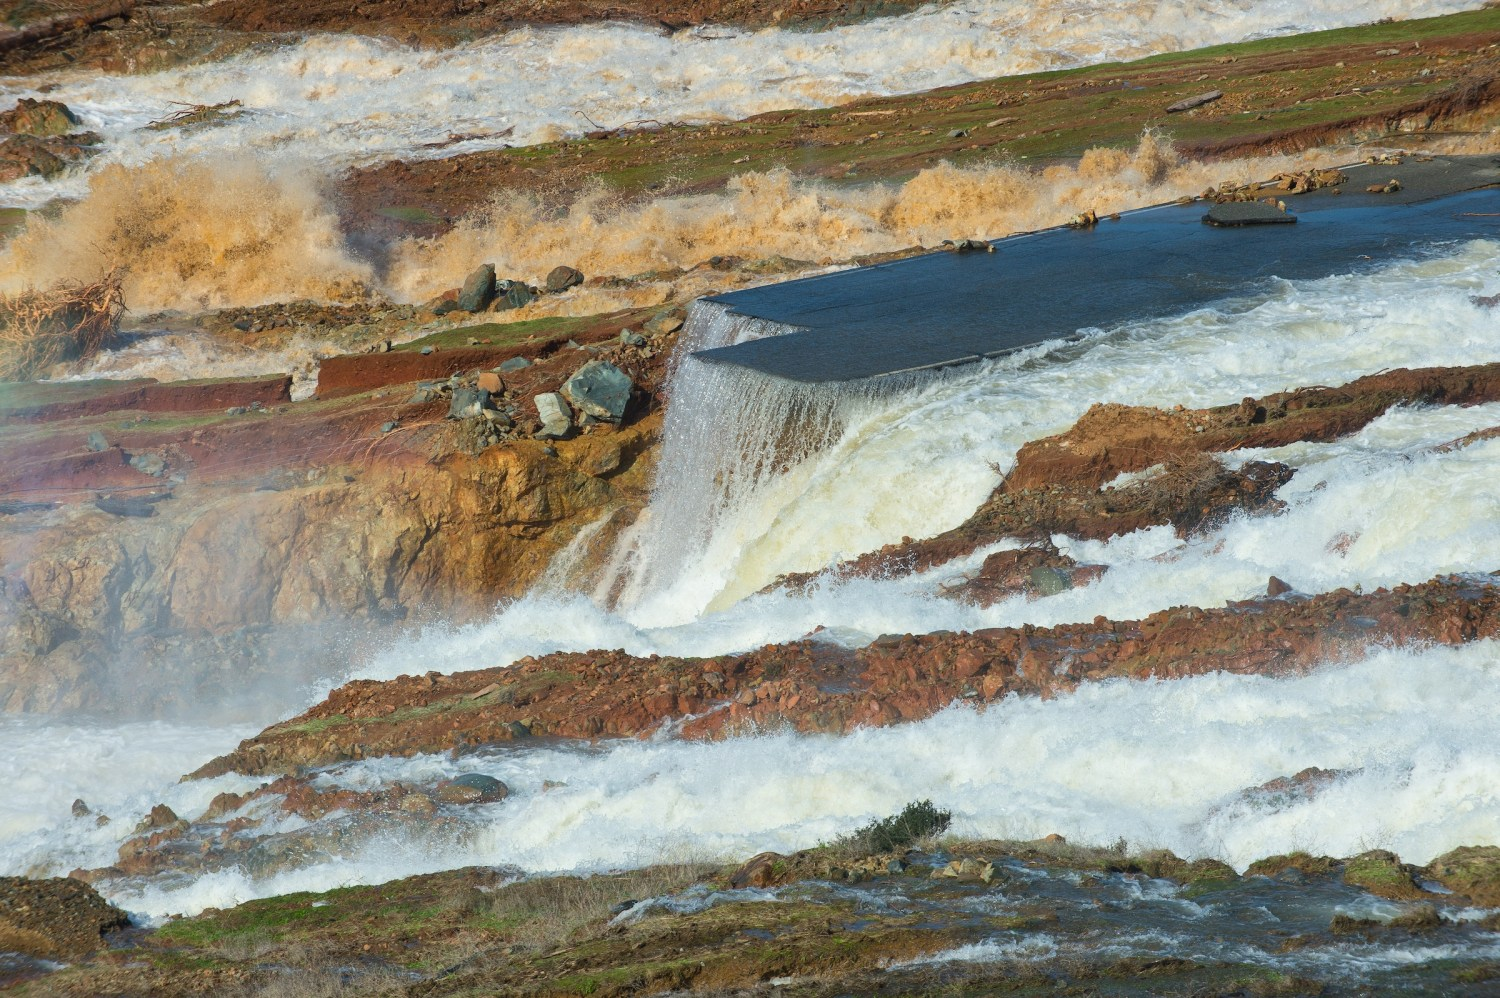 Water from the Oroville Dam auxiliary spillway has eroded the roadway just below the spillway. Photo courtesty of Kelly M. Grow/ California Department of Water Resources